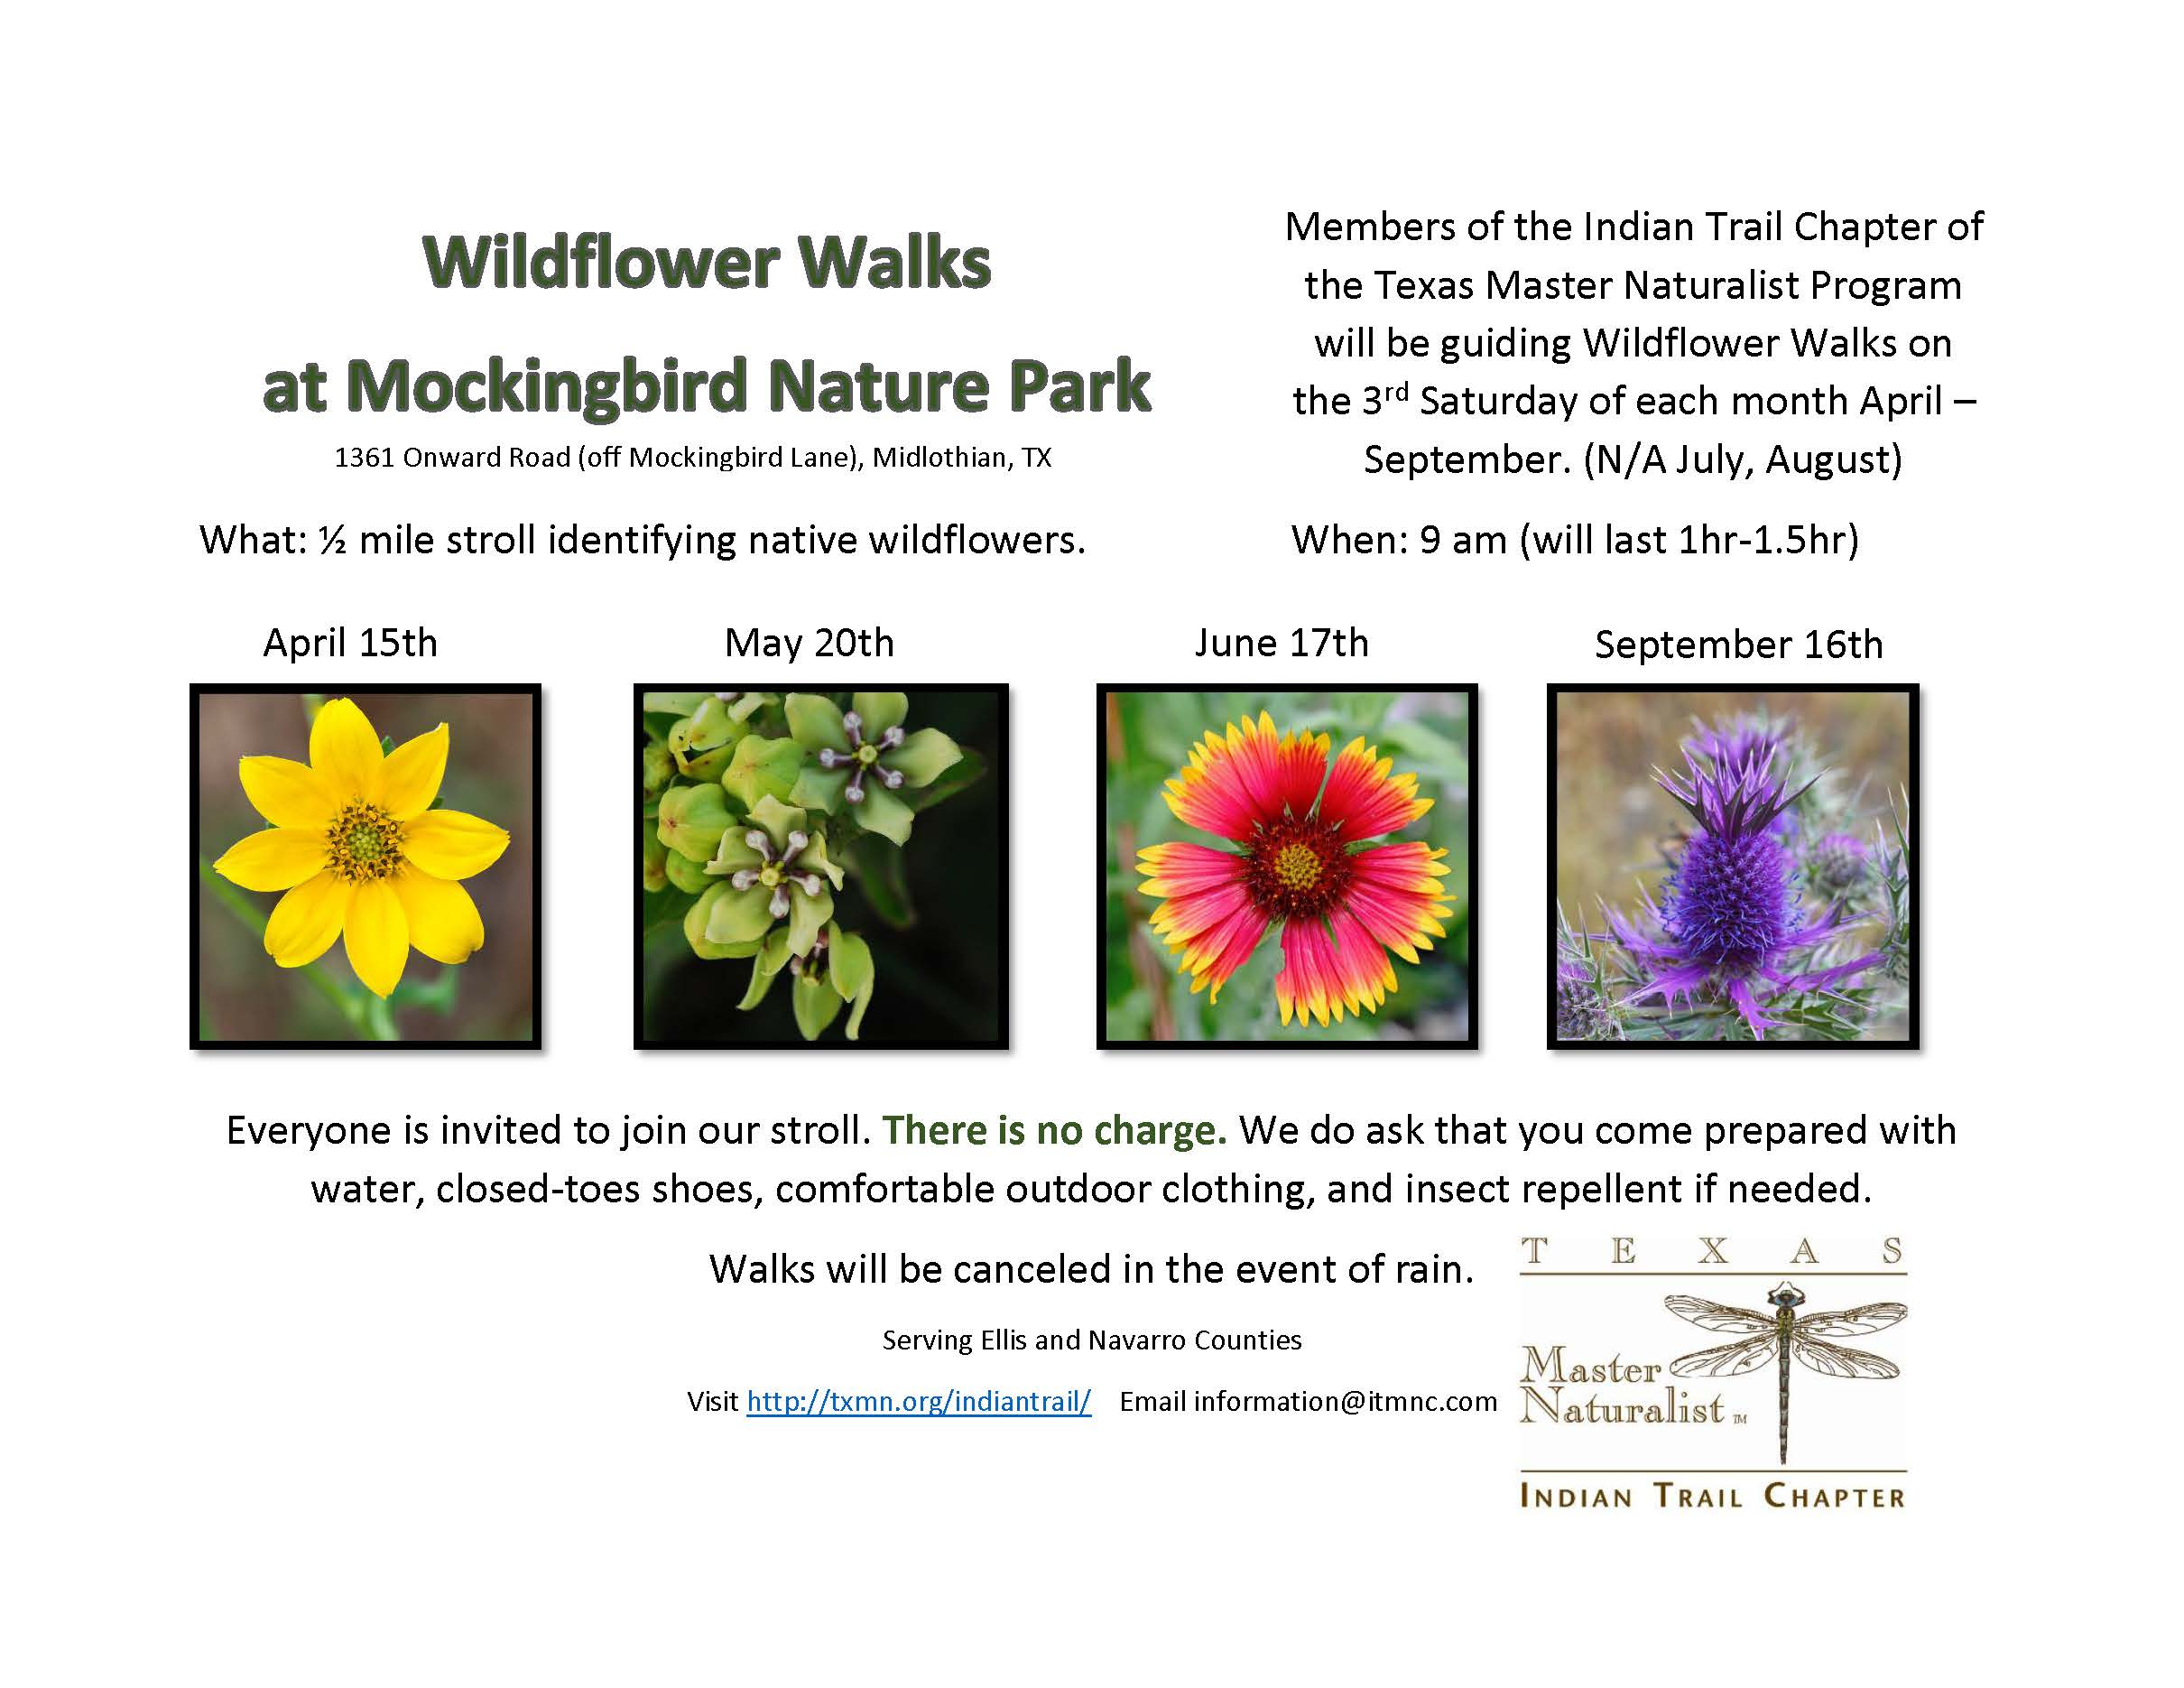 Wildflower Walks Flyer 2017